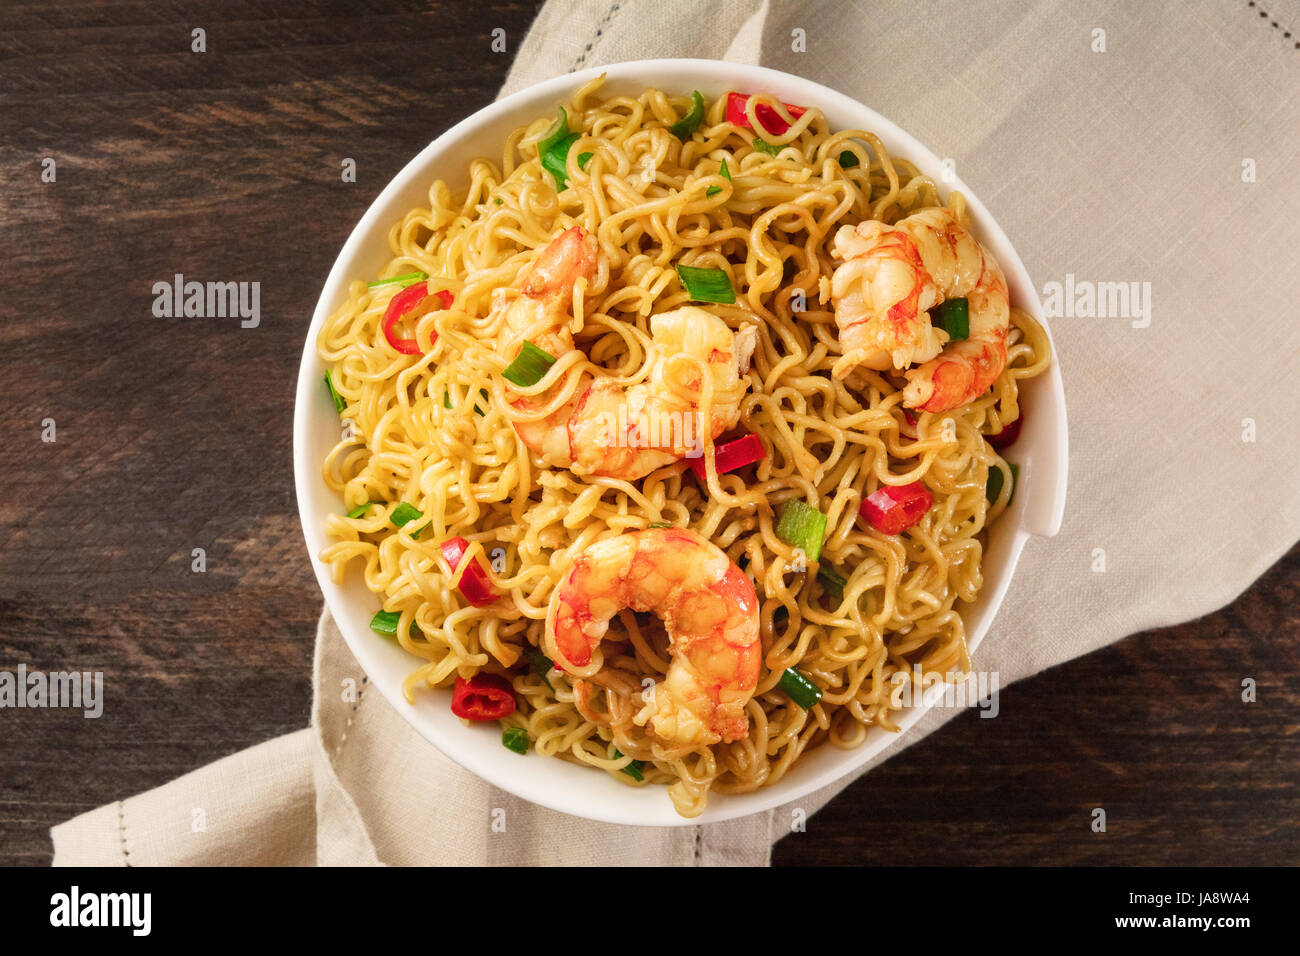 Instant noodles with vegetables, shrimps, and copy space Stock Photo